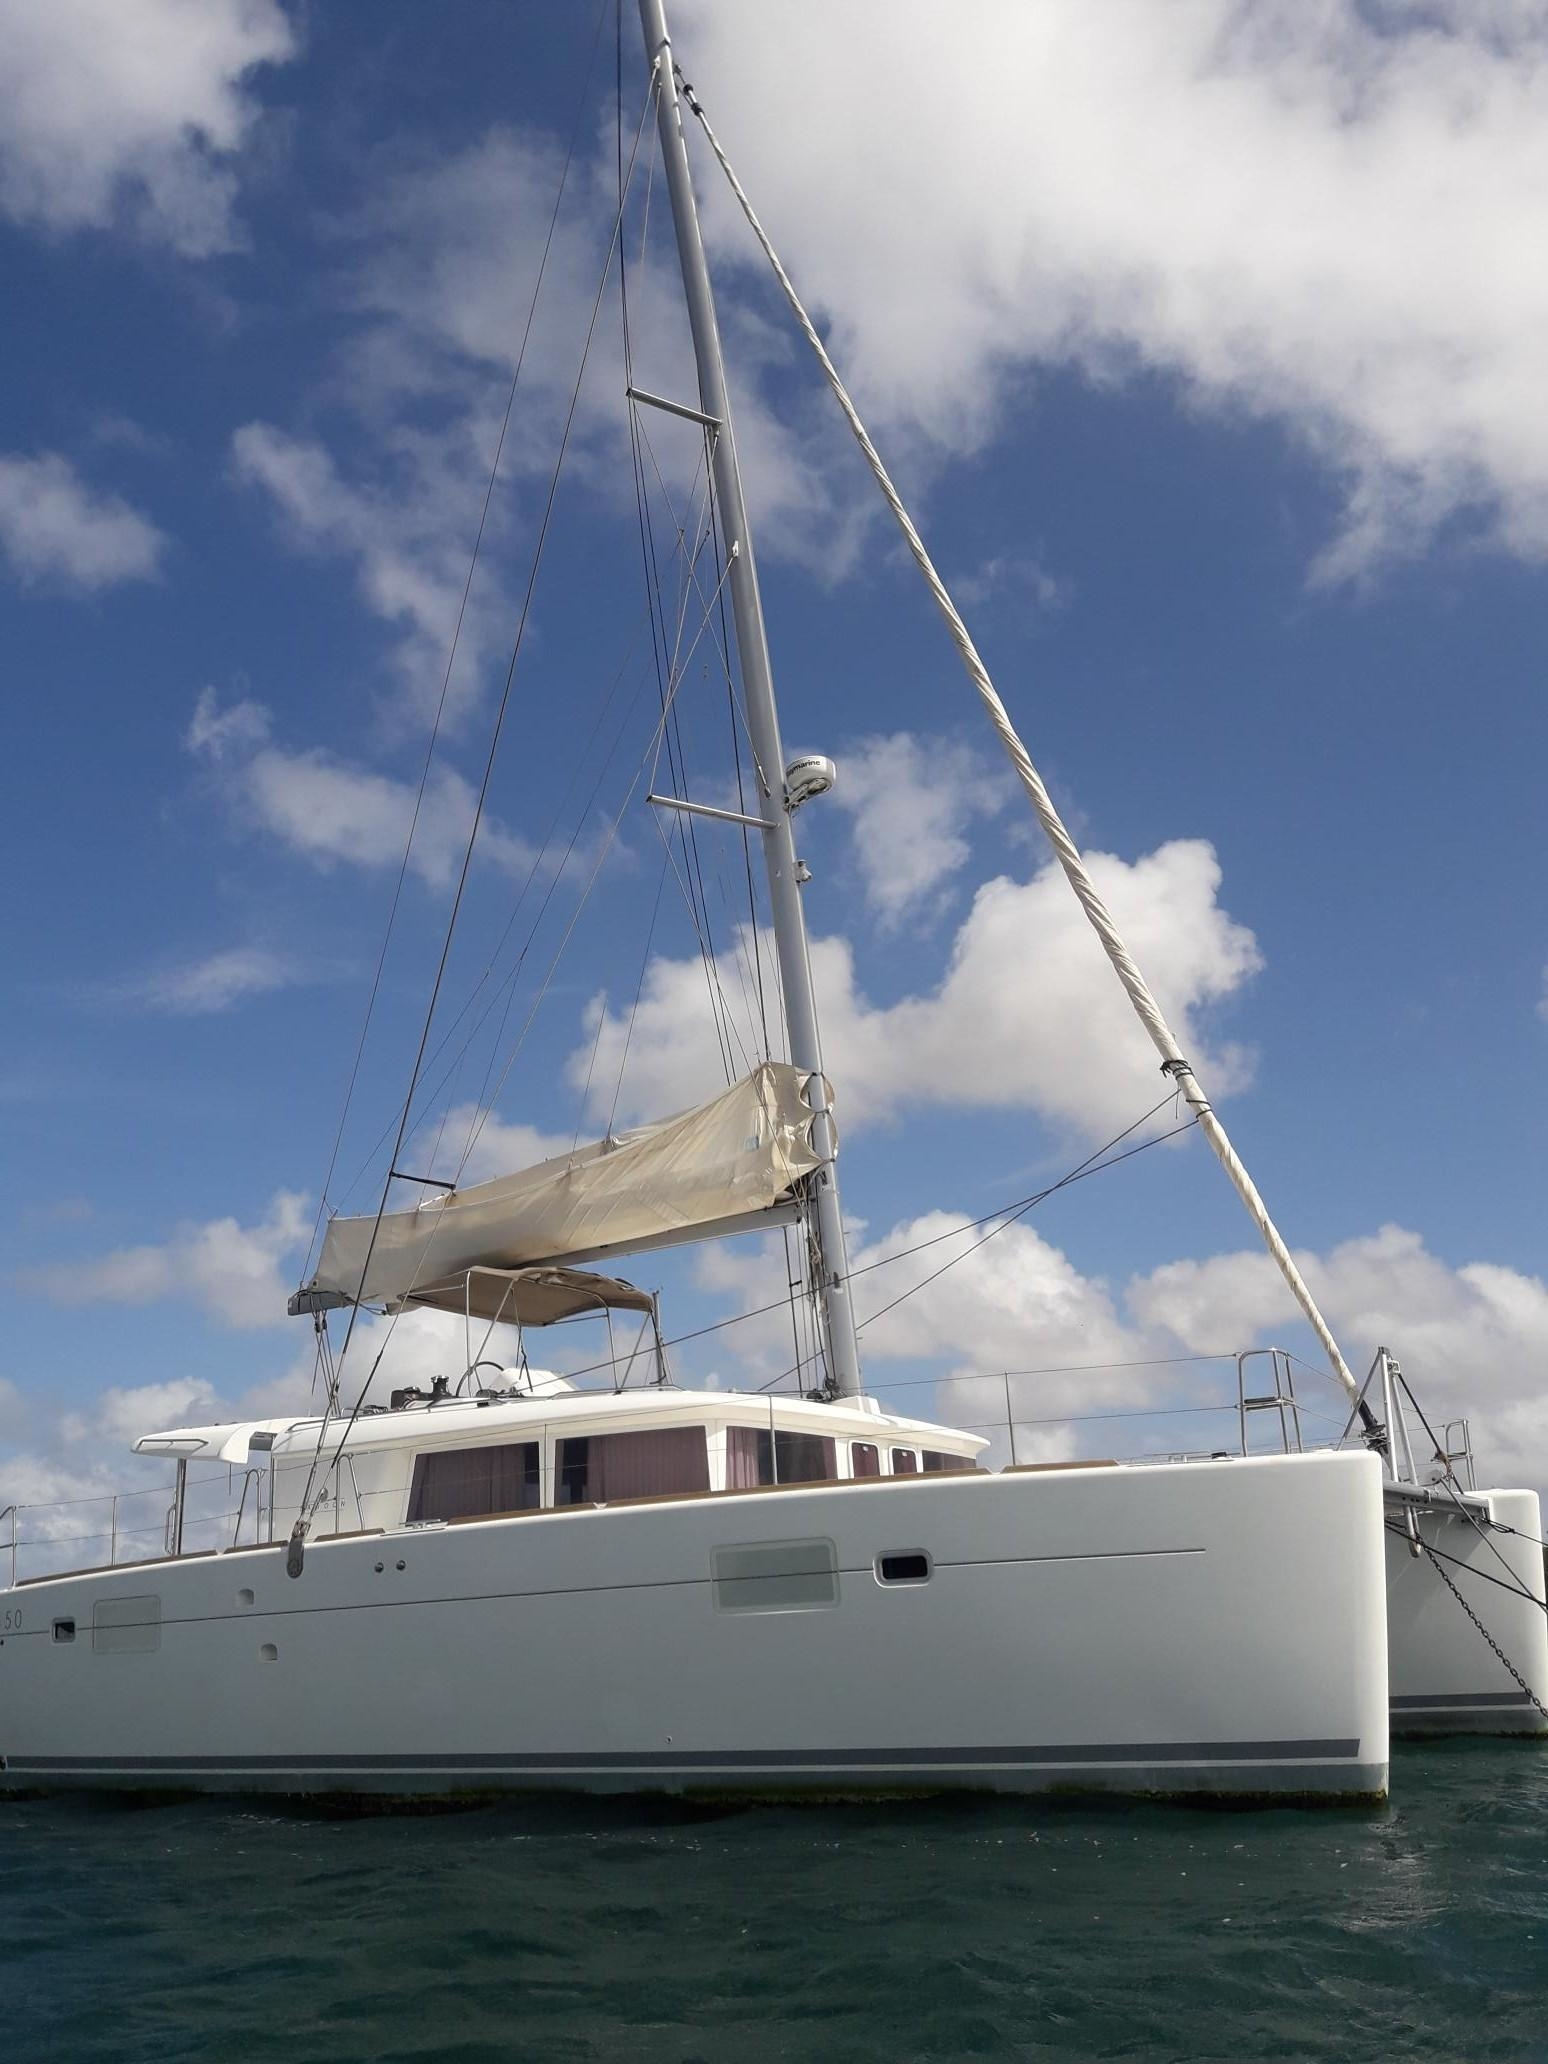 13 Catamarans that have pending offers in last 30 days